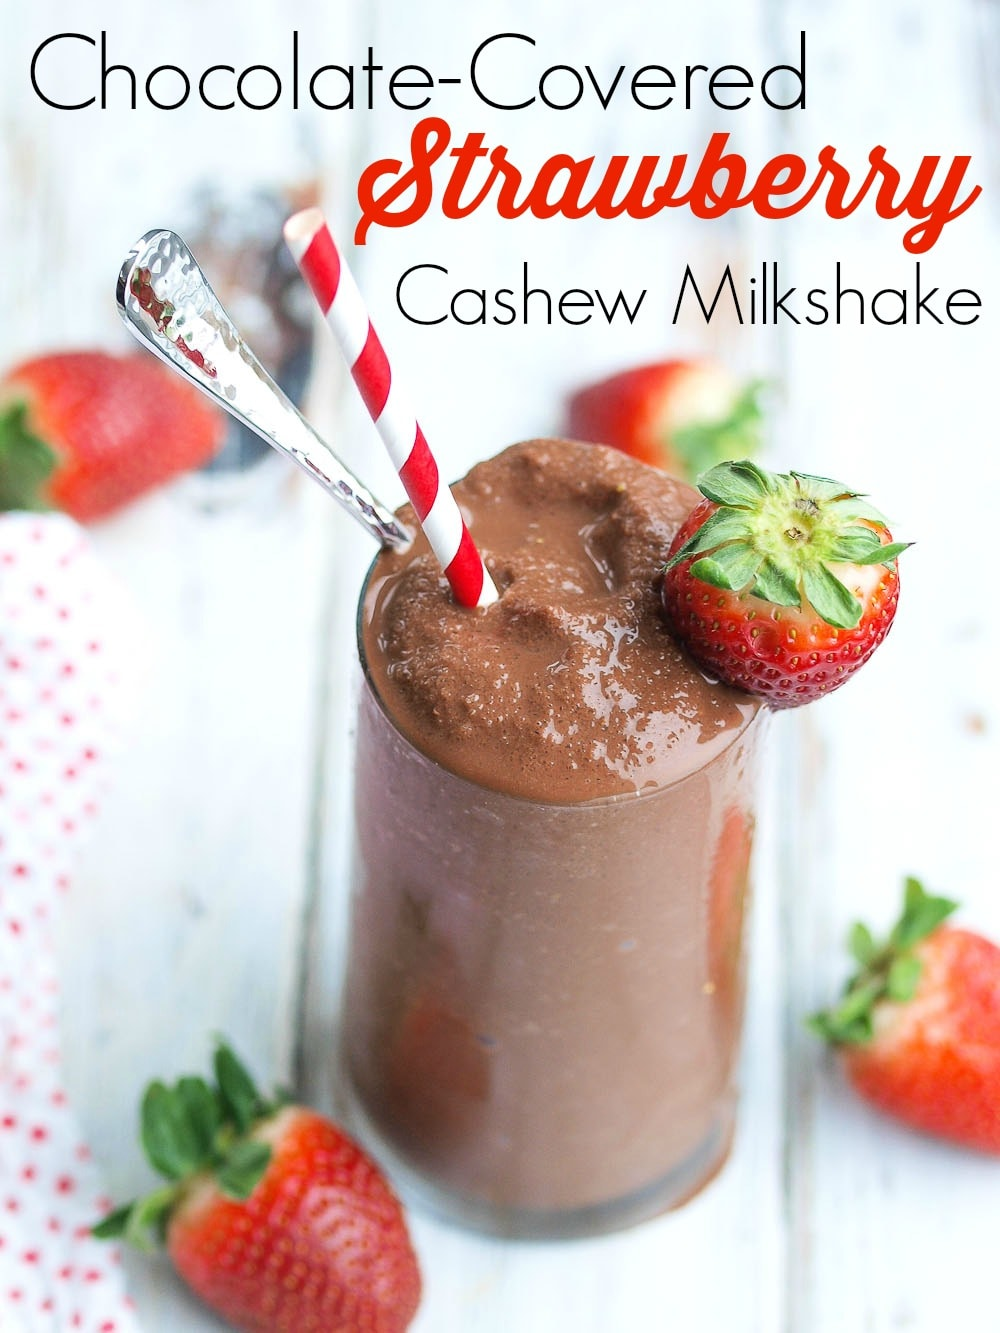 Chocolate Covered Strawberry Cashew Milkshake